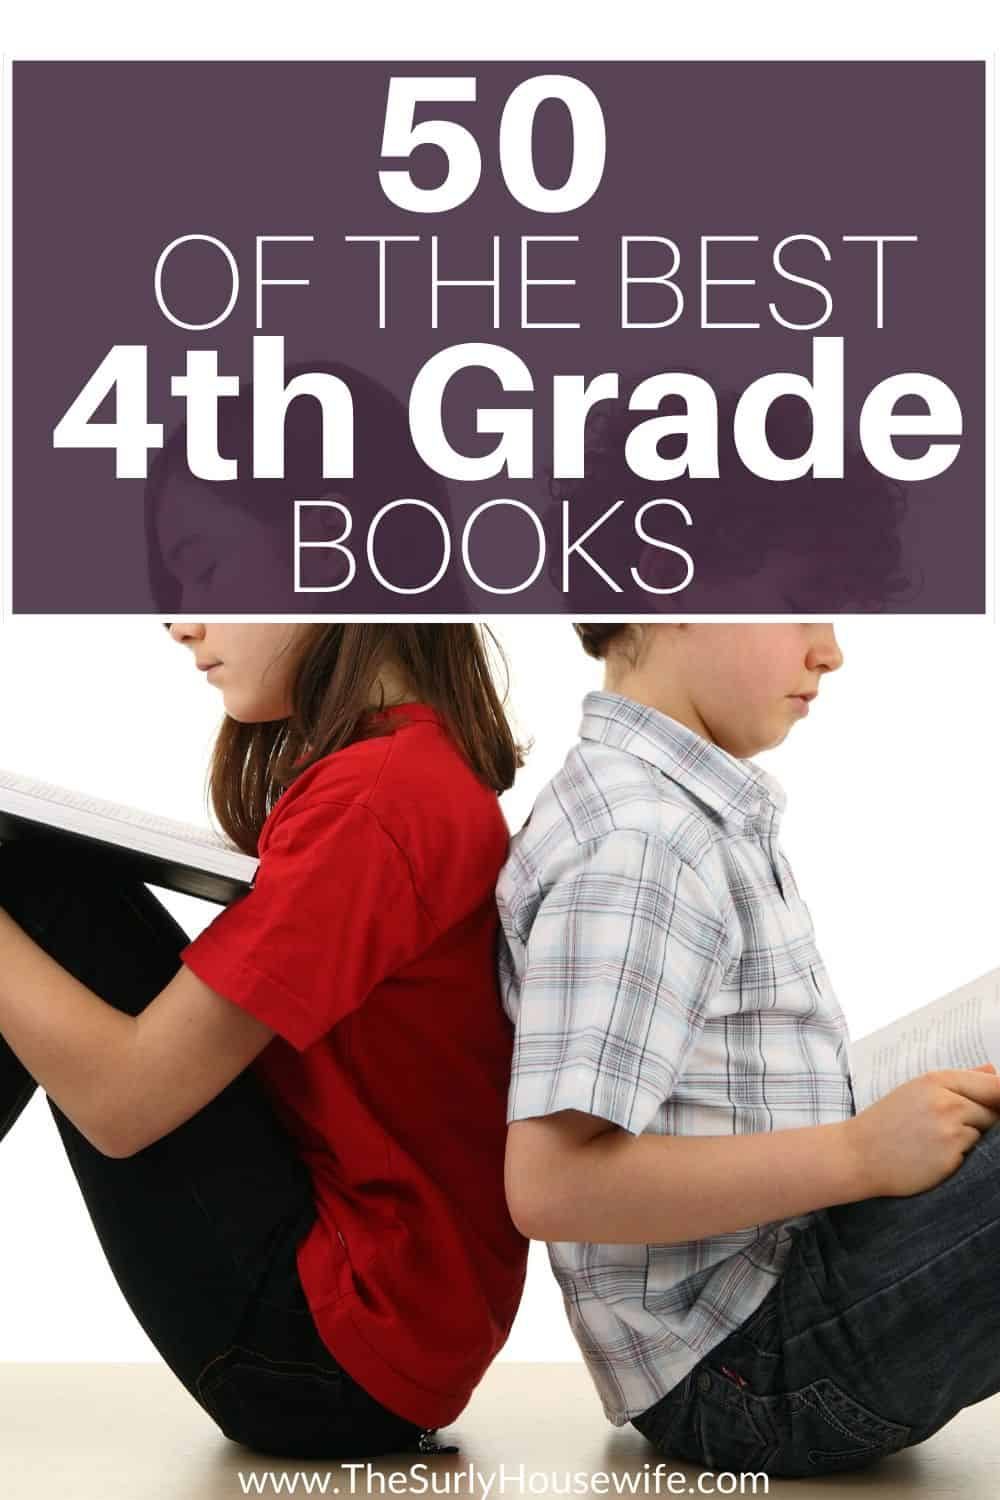 Searching for books for your fourth grader? Here are some of the best books for 4th grade including read alouds, books for boys or girls, and classic books! An excellent list for books that kids will love. The best chapter book for kids ages 8-10 or 4th grade.